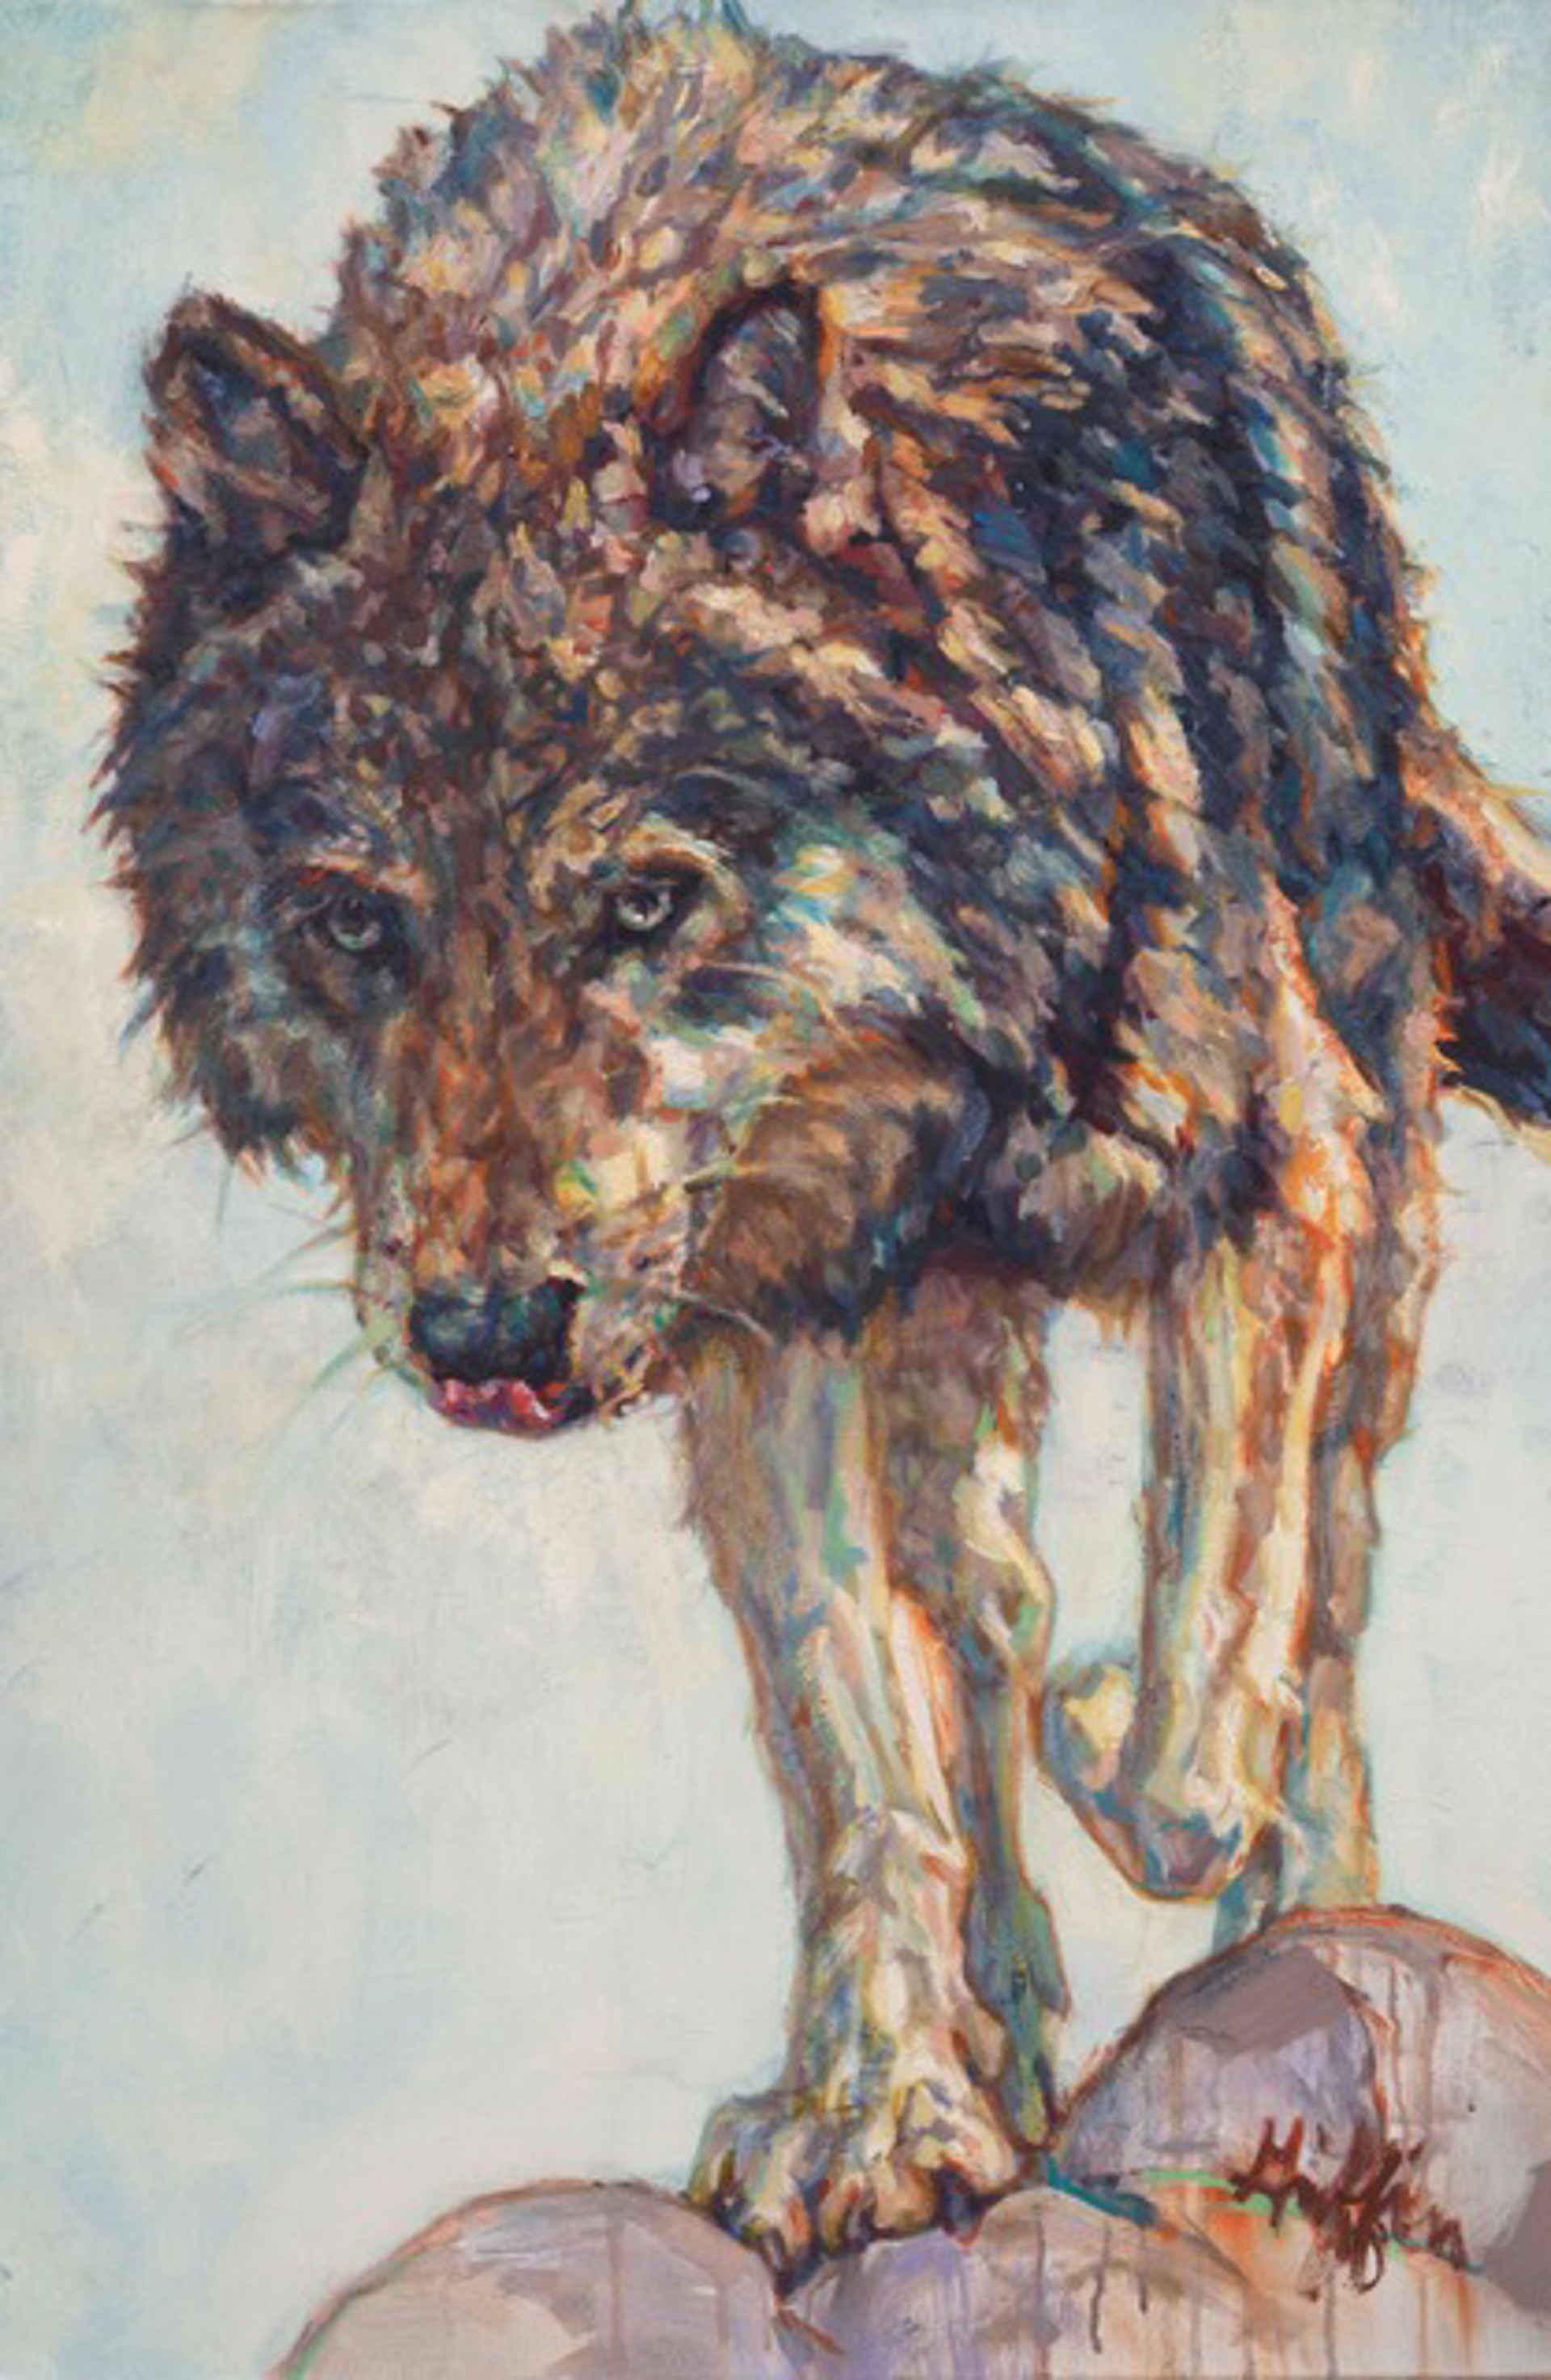 Oil Painting Of A White Gray And Brown Wolf Coming Over Rocks Towards The Viewer Licking Its Nose